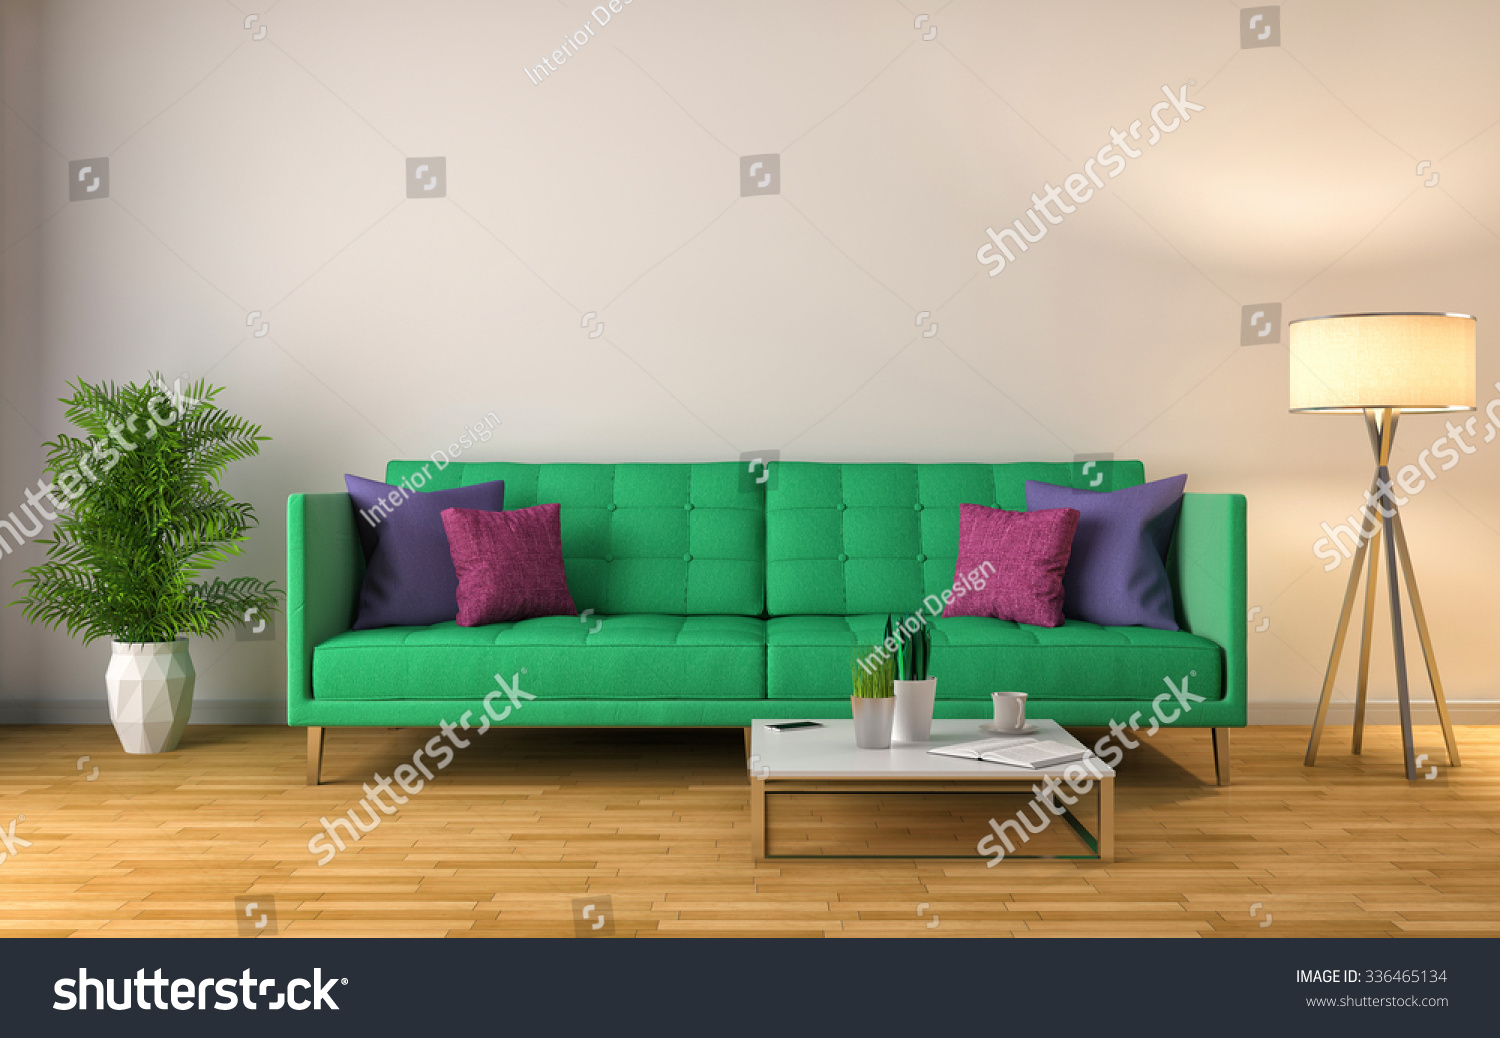 interior with green sofa 3D illustration